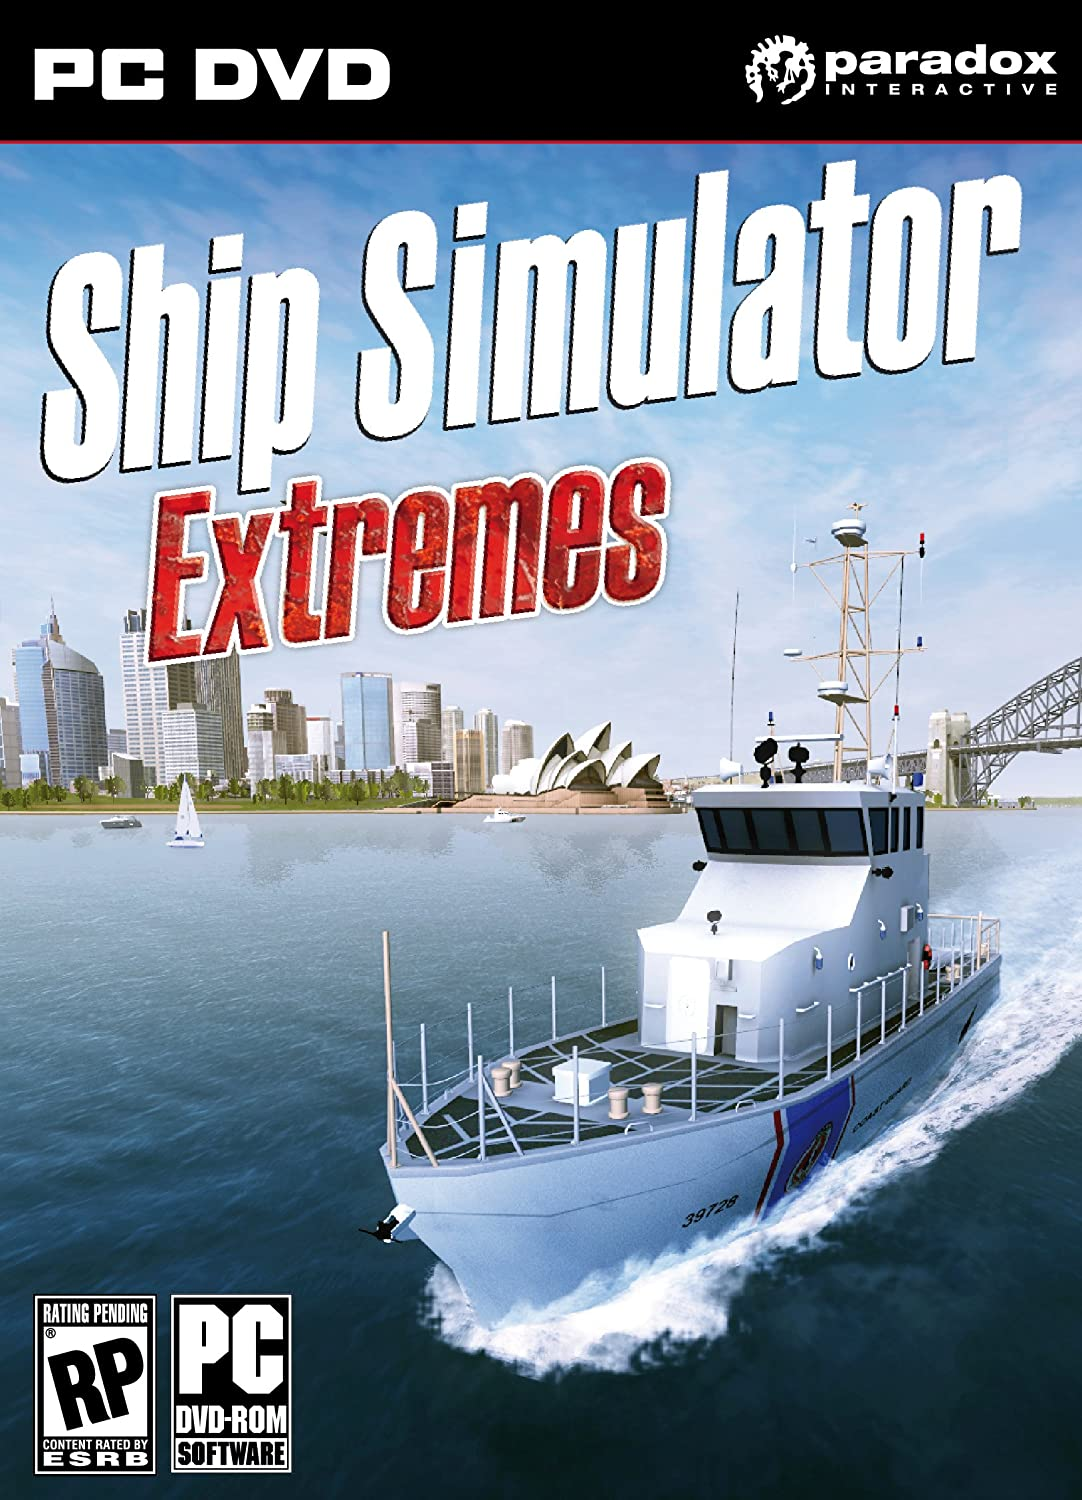 Amazon com: Ship Simulator Extremes - PC: Video Games